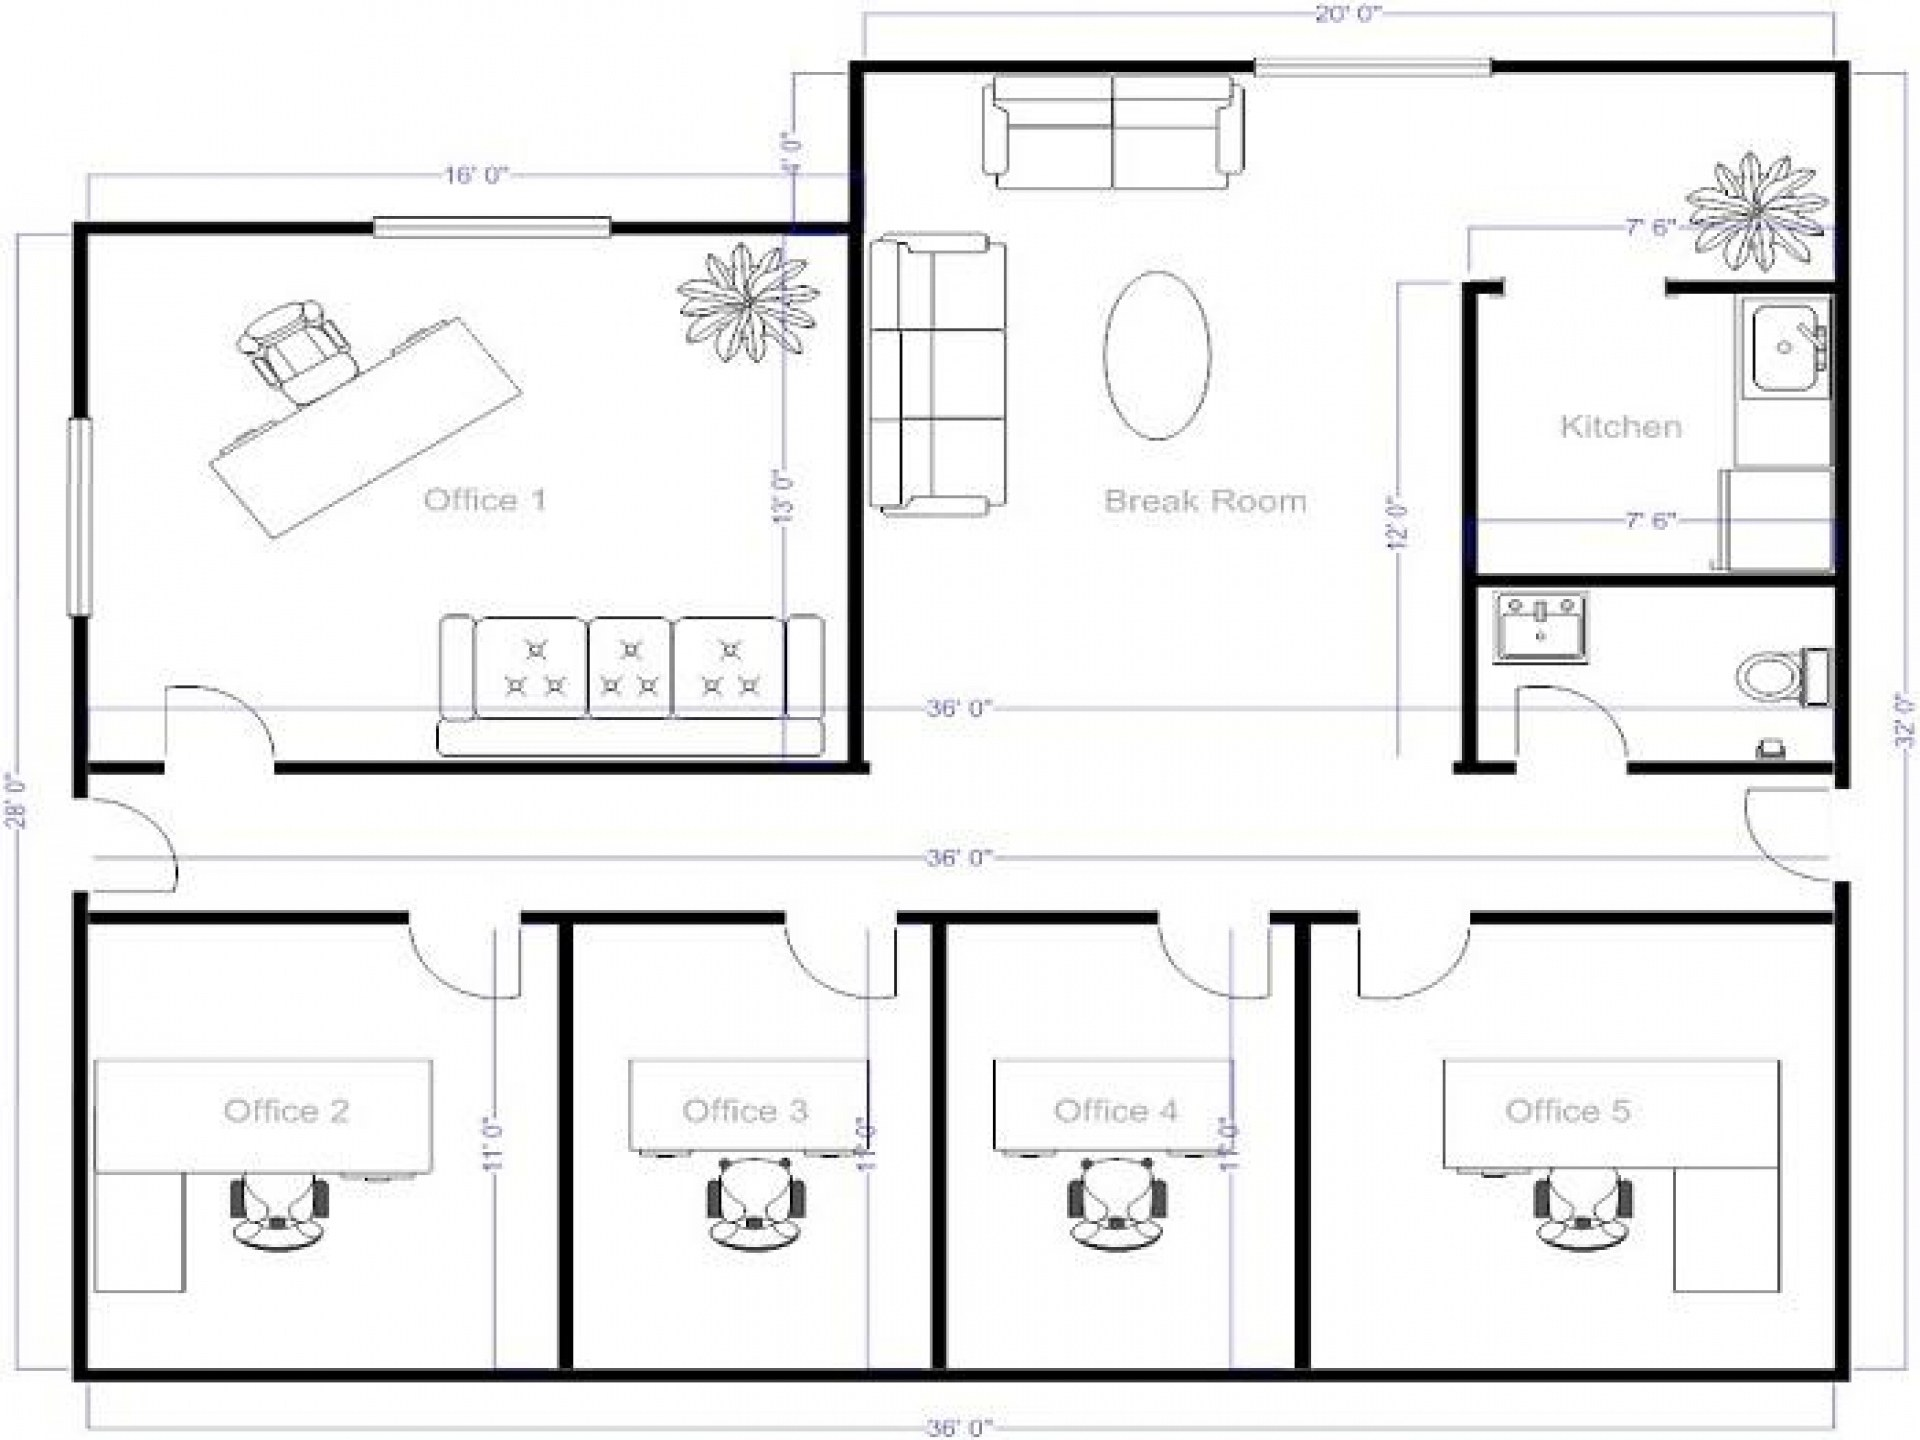 Autocad Kitchen Drawings | Free download best Autocad